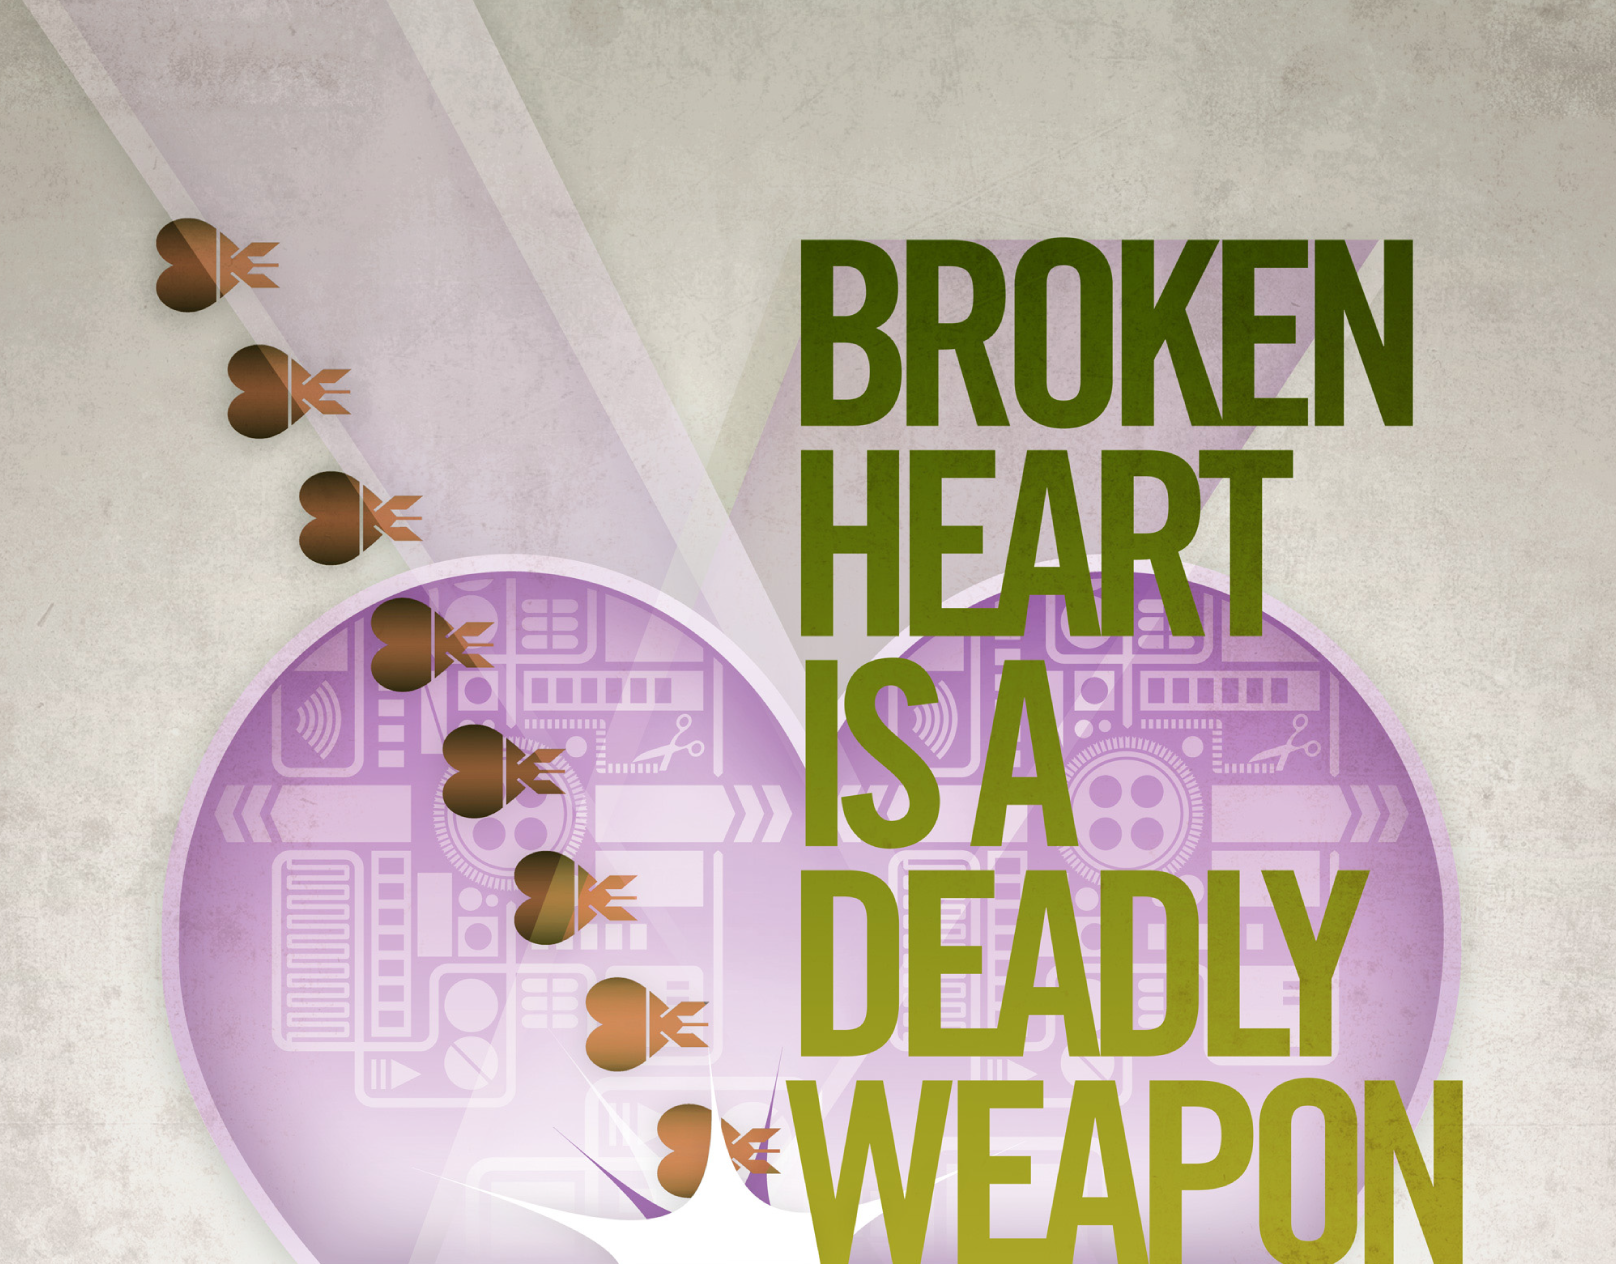 Broken Heart Is A Deadly Weapon